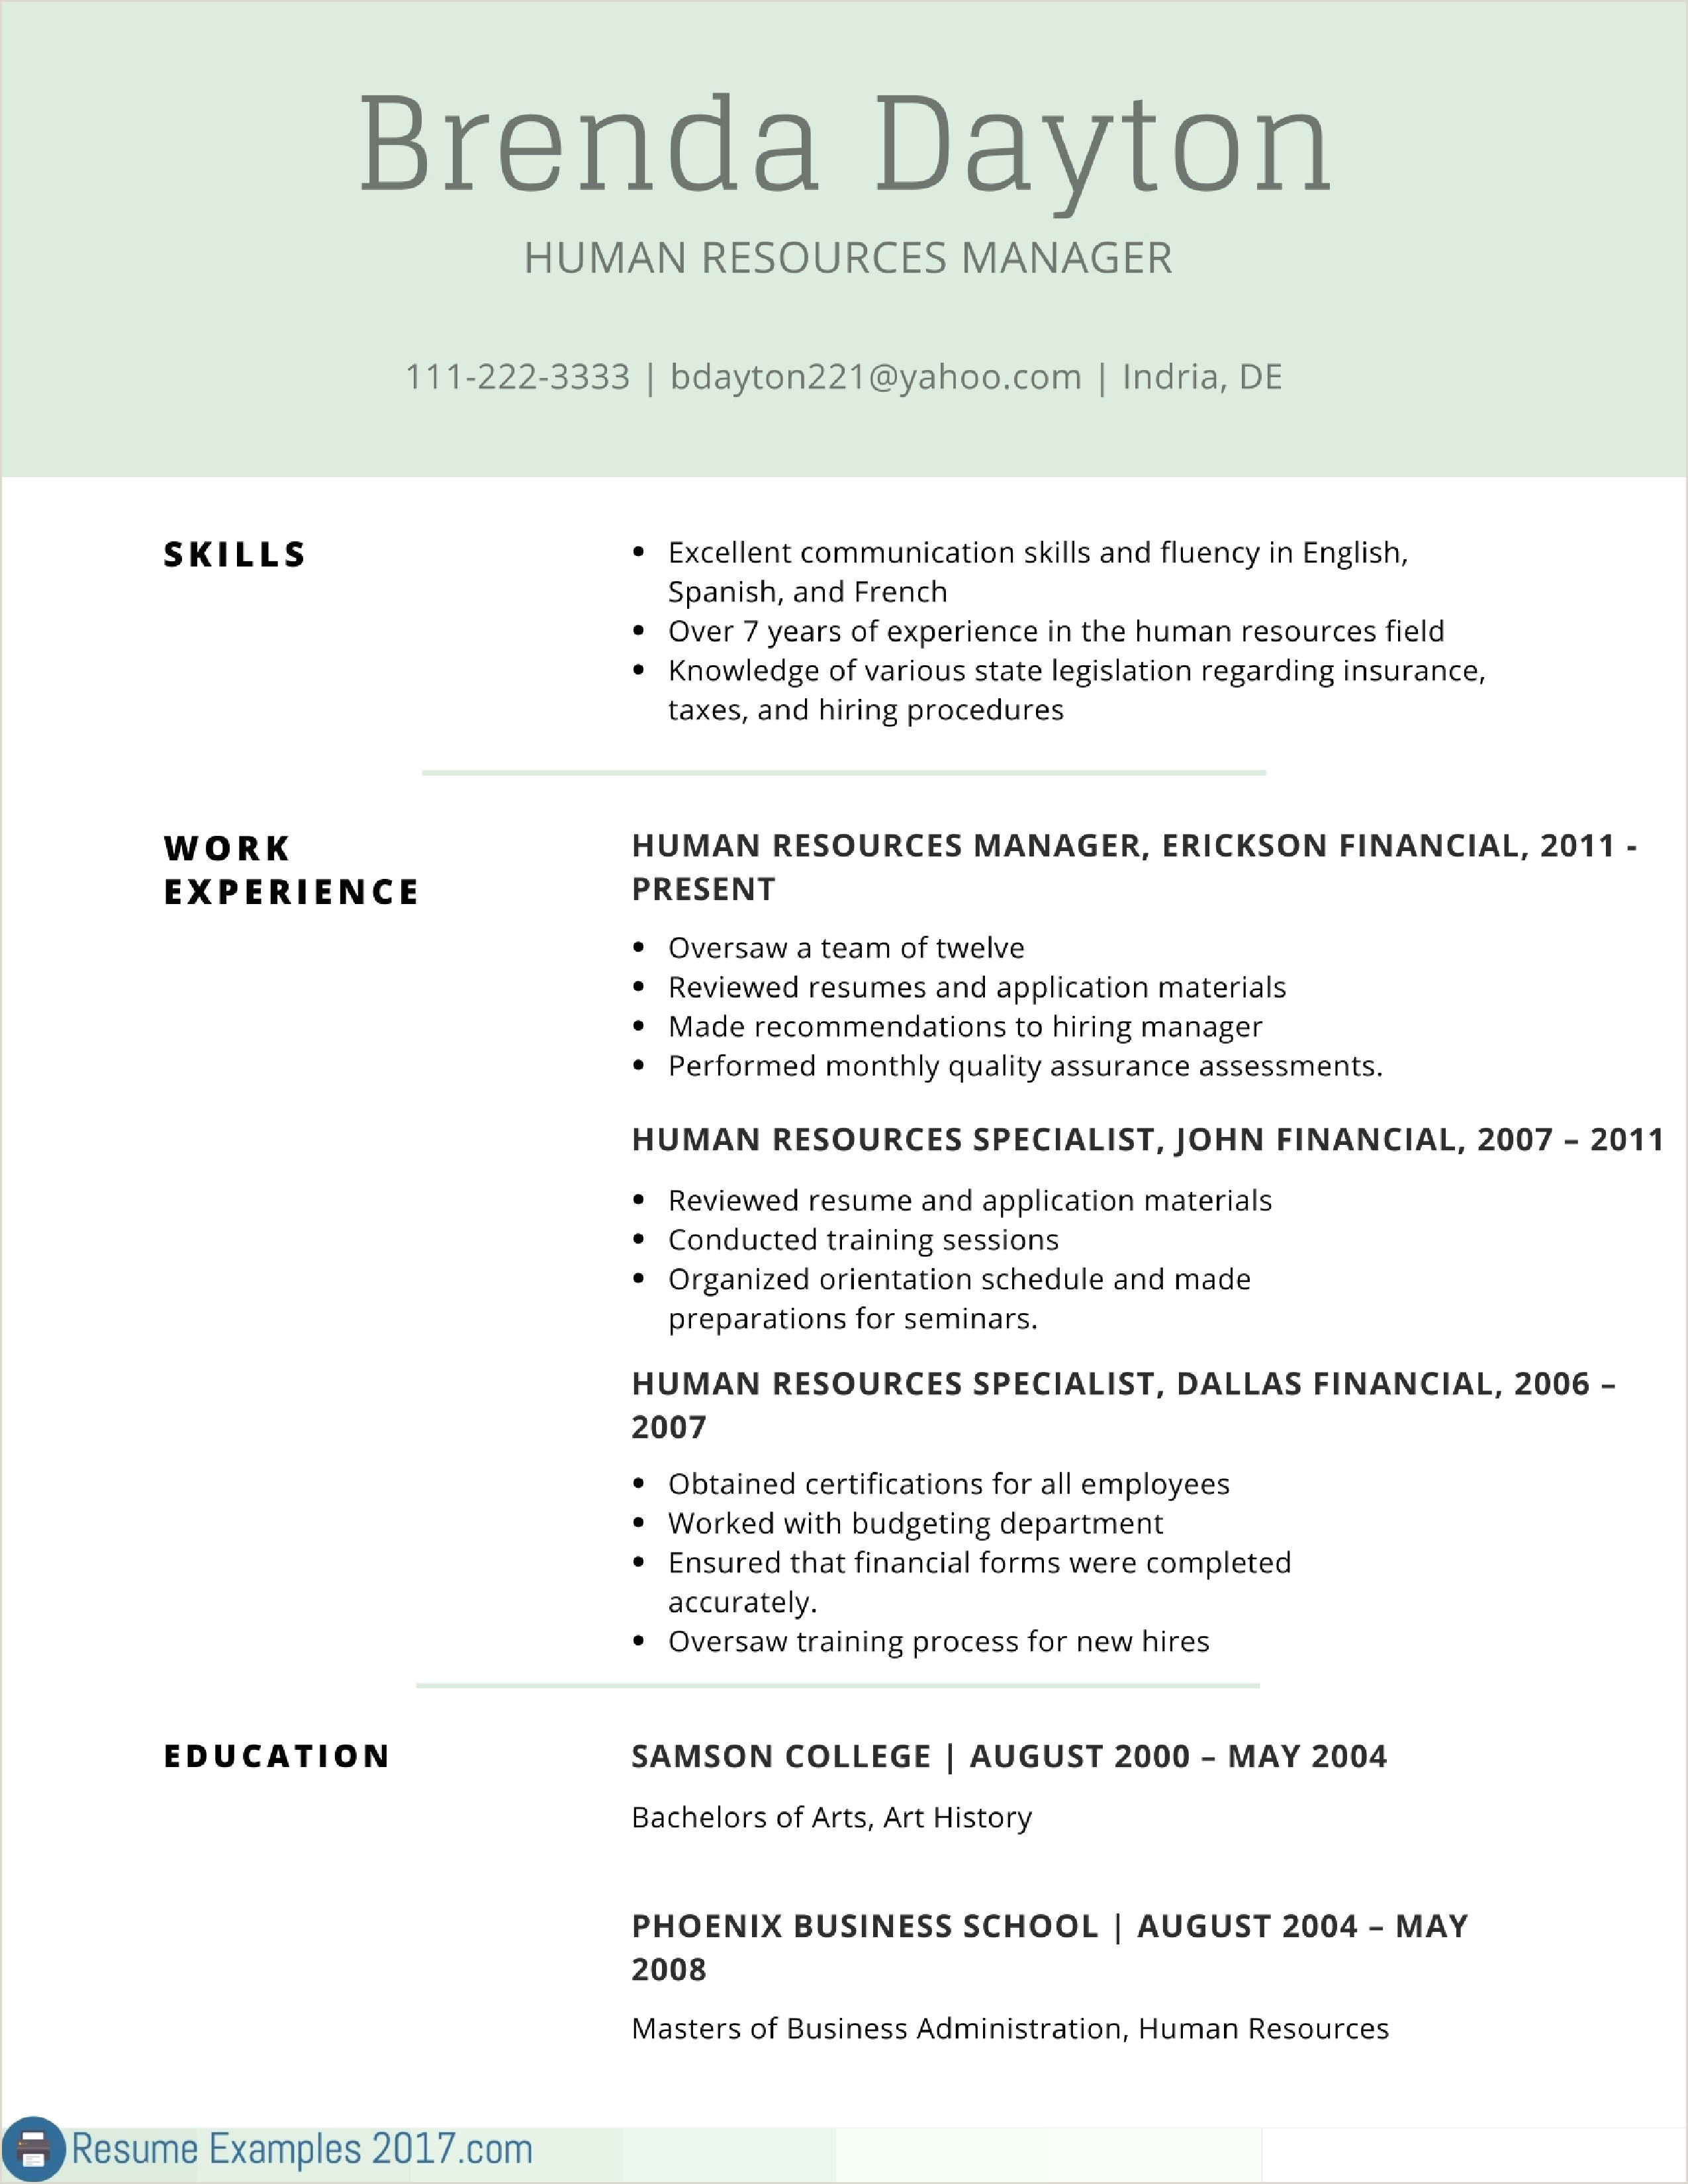 Curriculum Vitae Profile Examples Luxury Lovely Sample